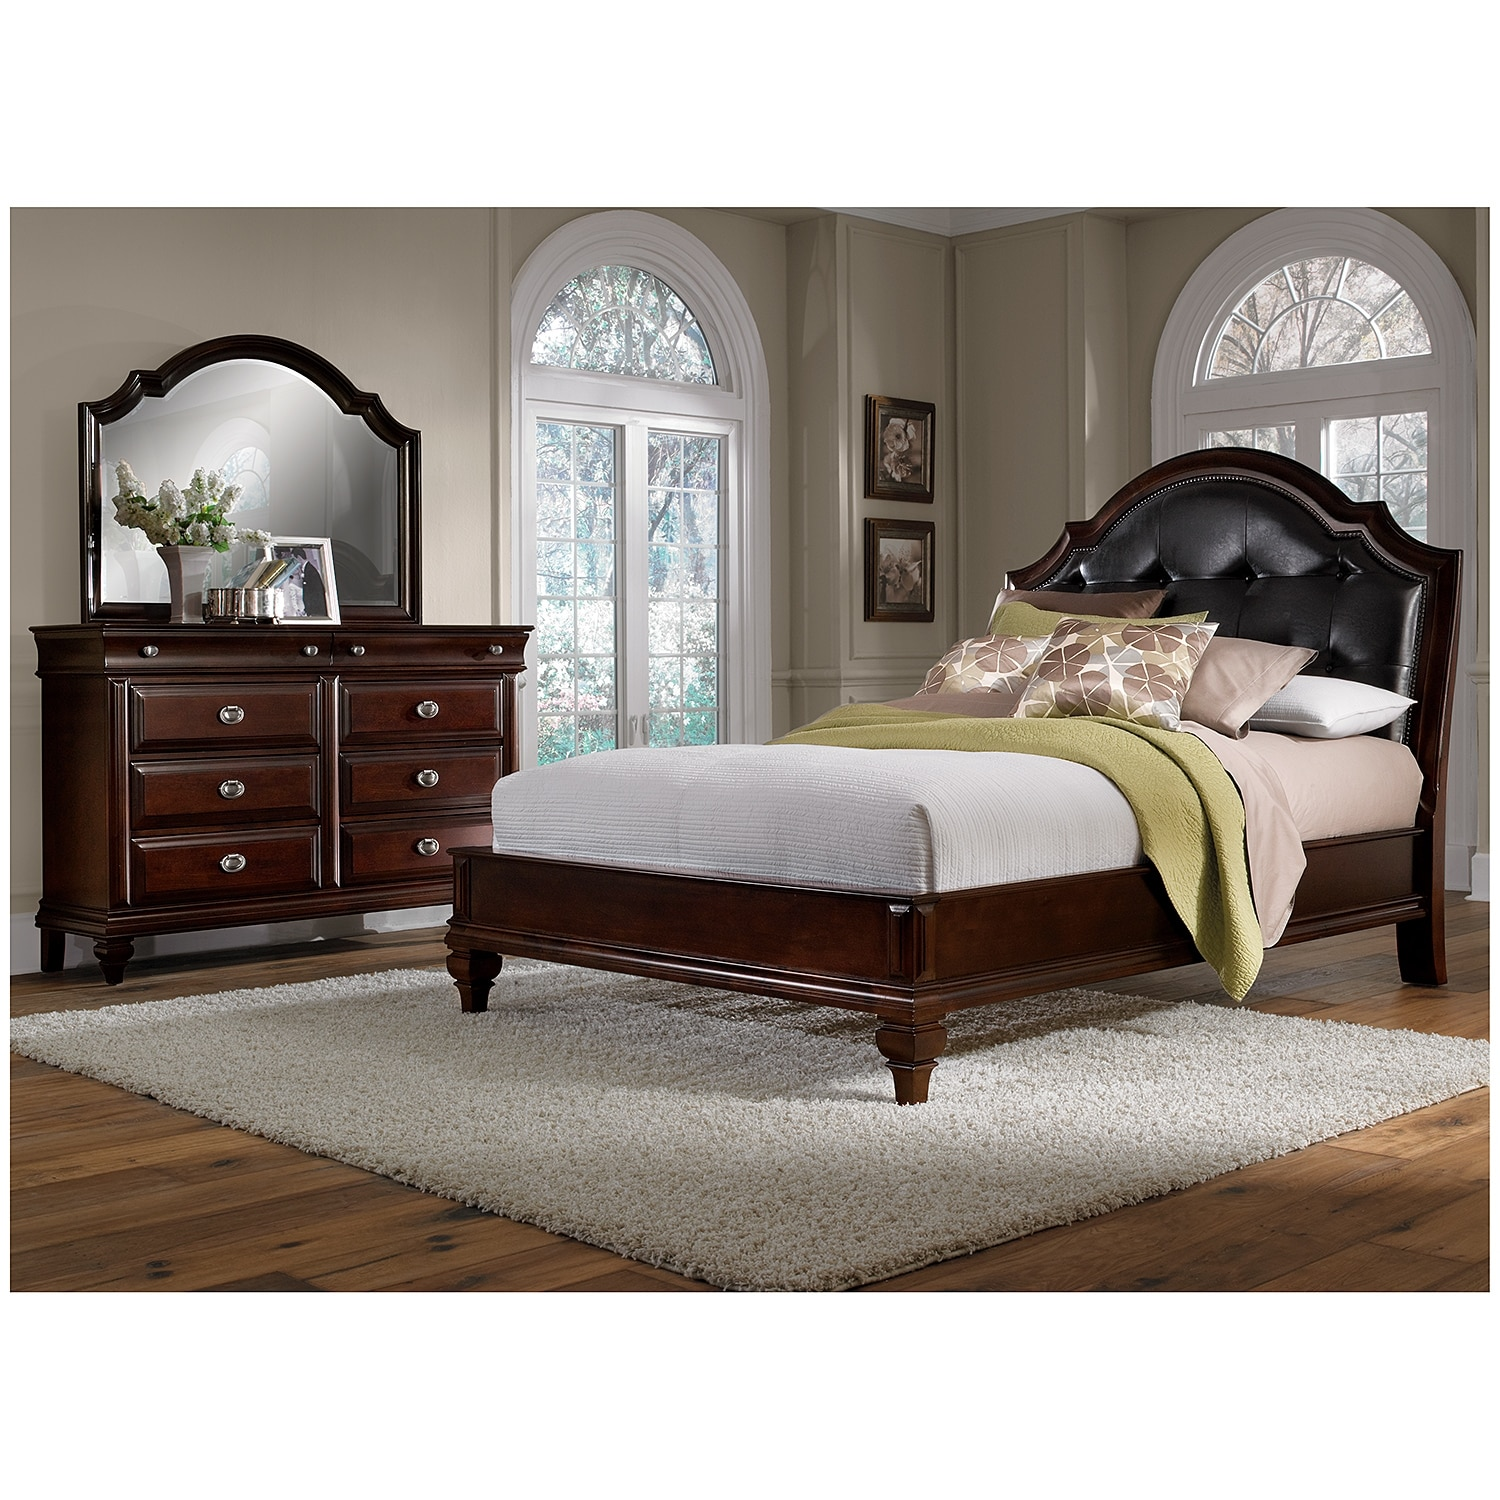 american signature bedroom furniture manhattan 5 upholstered bedroom set cherry 14013